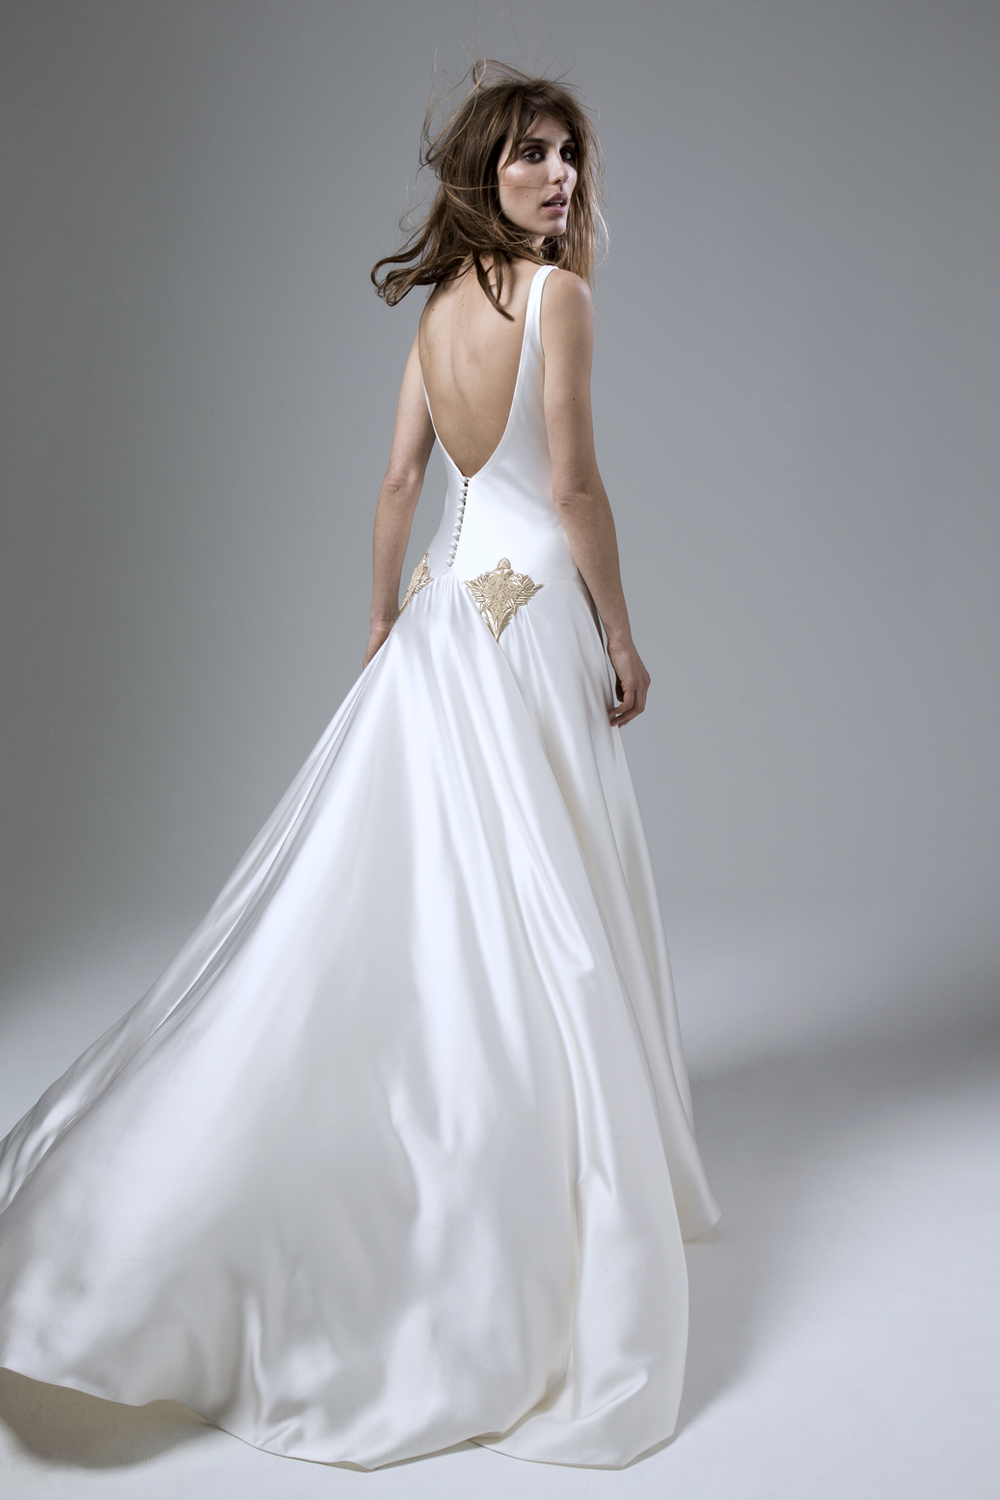 Milly Bafta V neck and low V back wedding dress with godgets and embellishment detailing designed by Halfpenny London